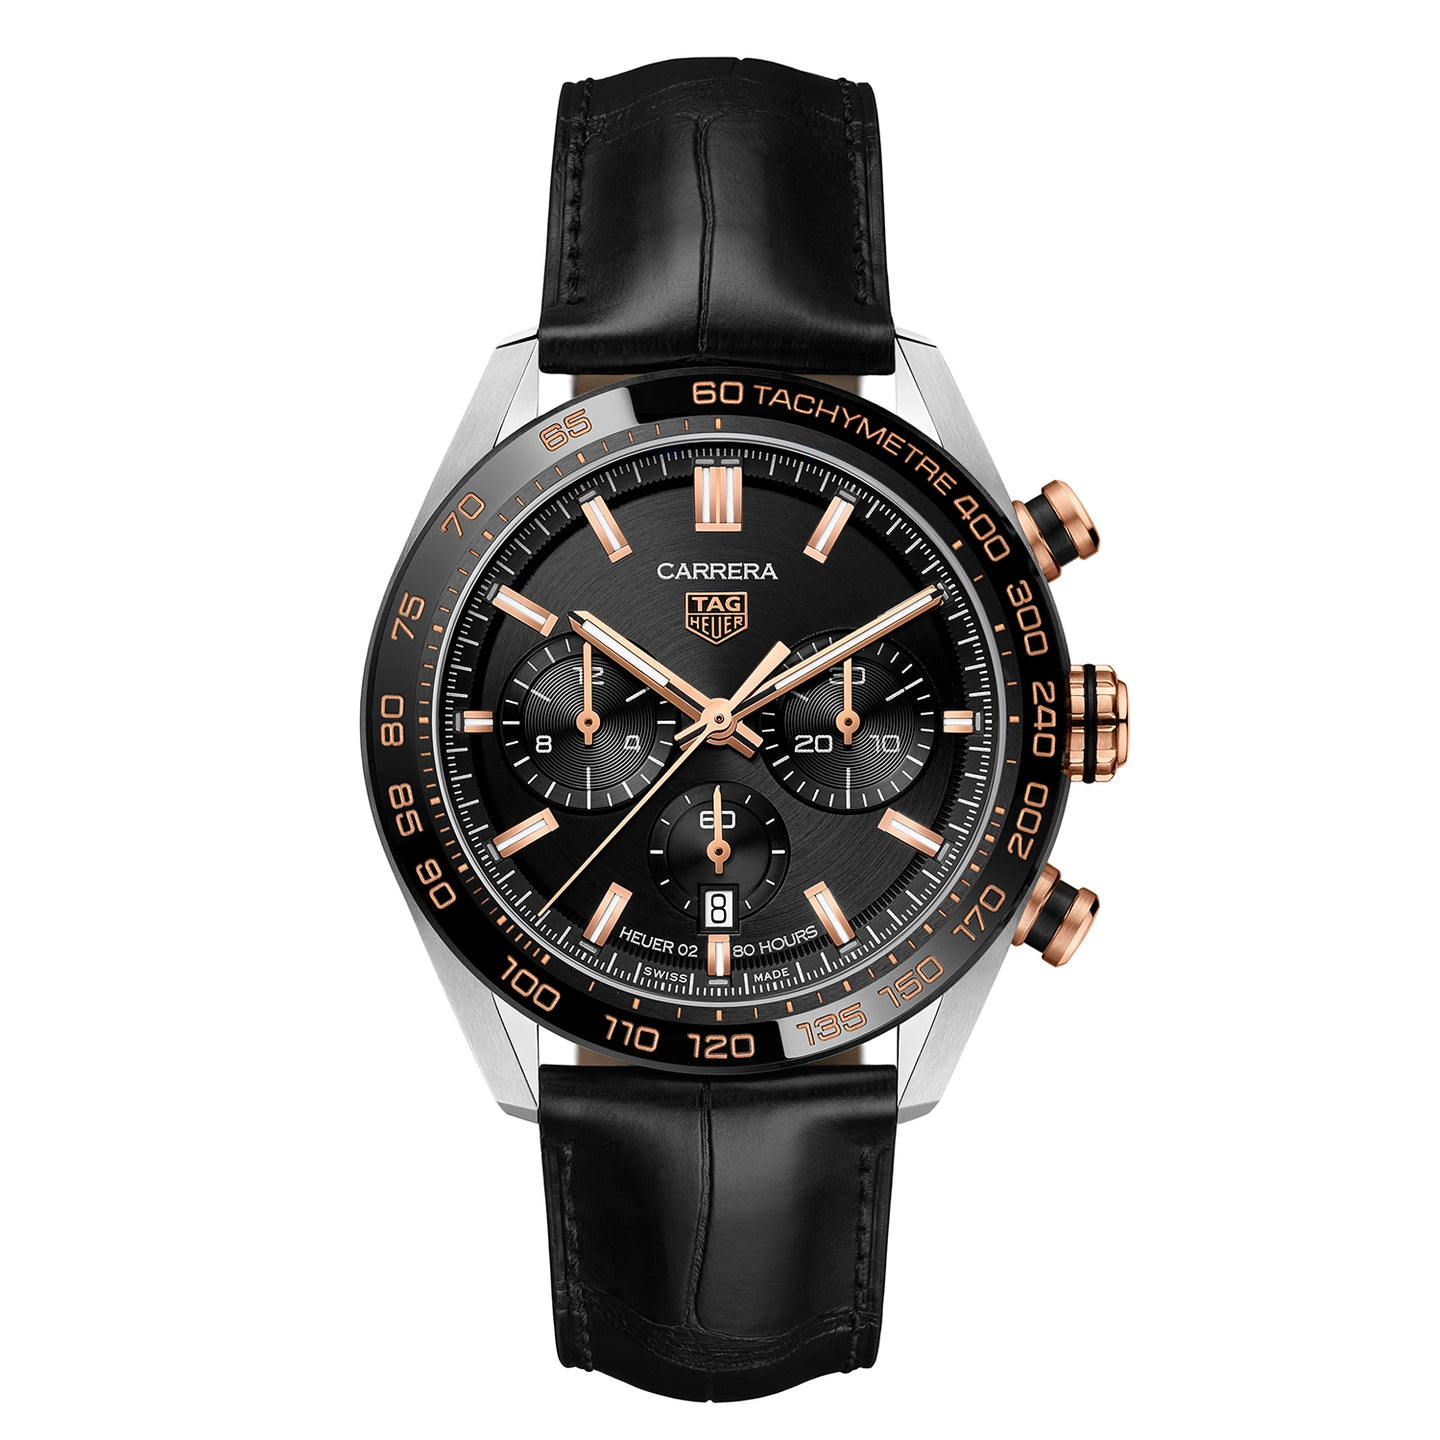 TAG Heuer Carrera Men's Automatic Sport Chronograph 44mm Black Dial Watch with Leather Strap